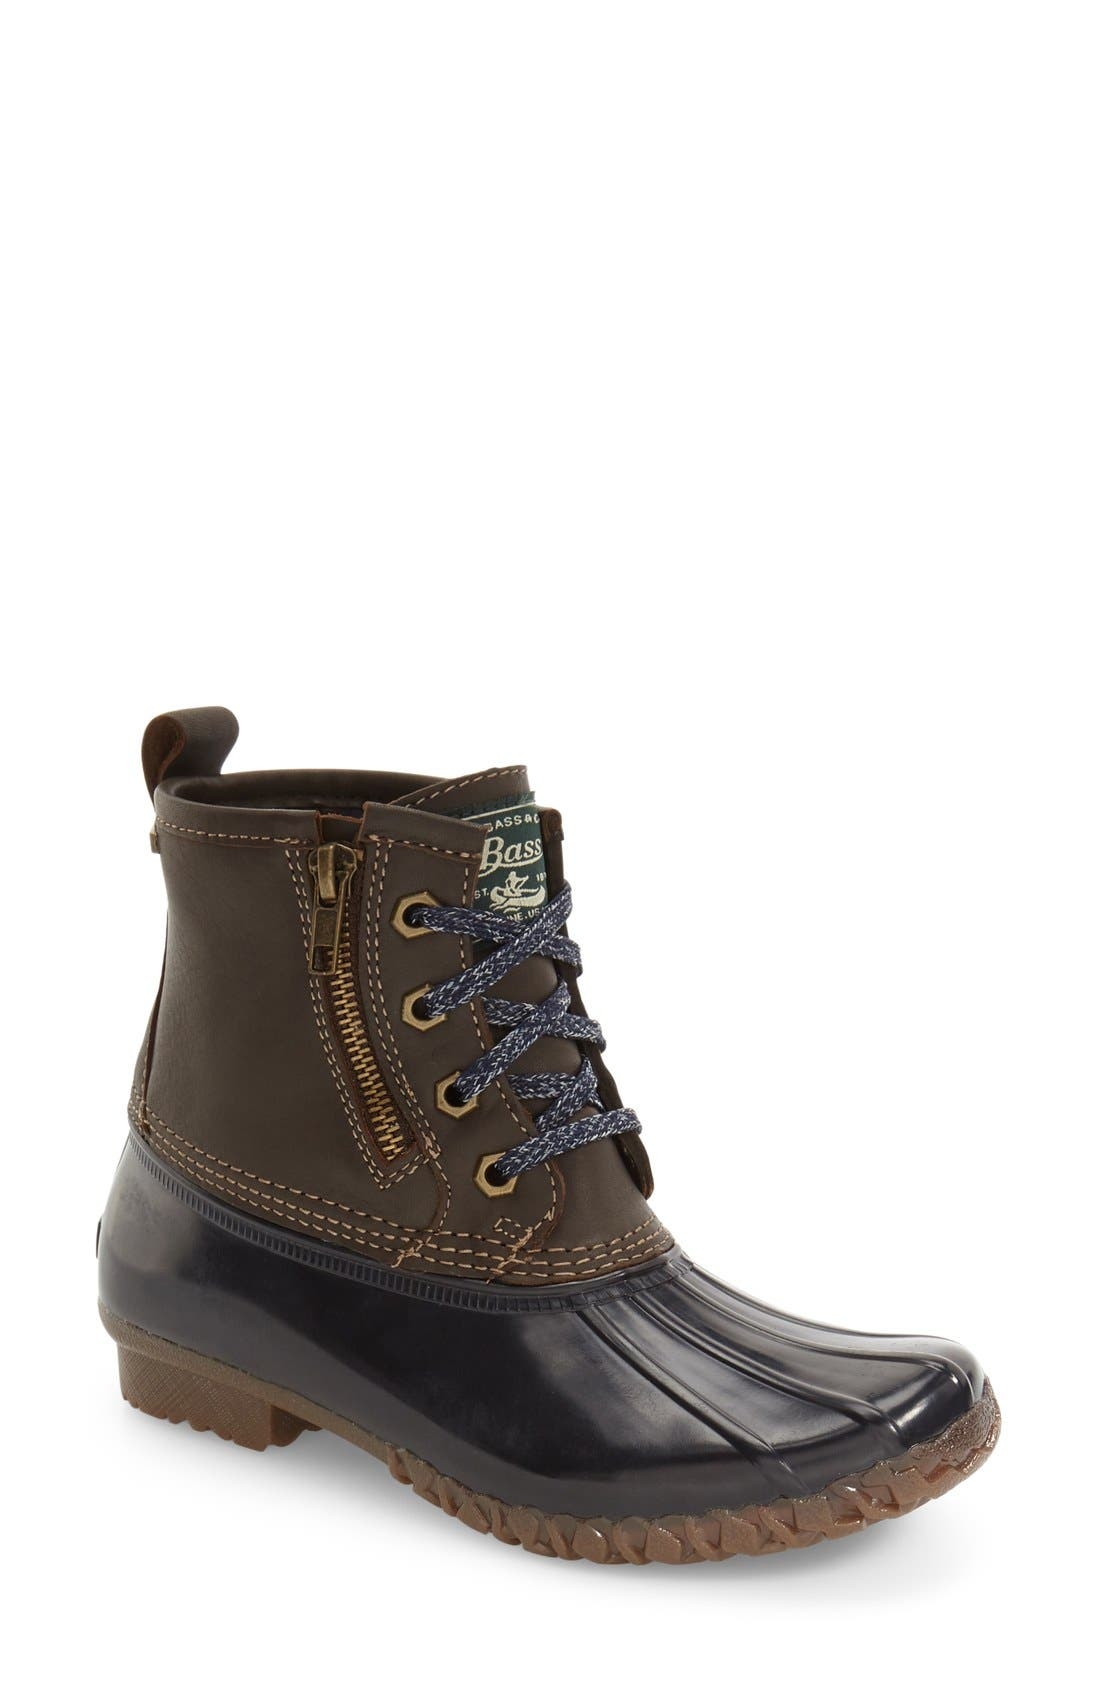 Danielle Waterproof Duck Boot,                             Main thumbnail 1, color,                             Chocolate/ Navy Leather